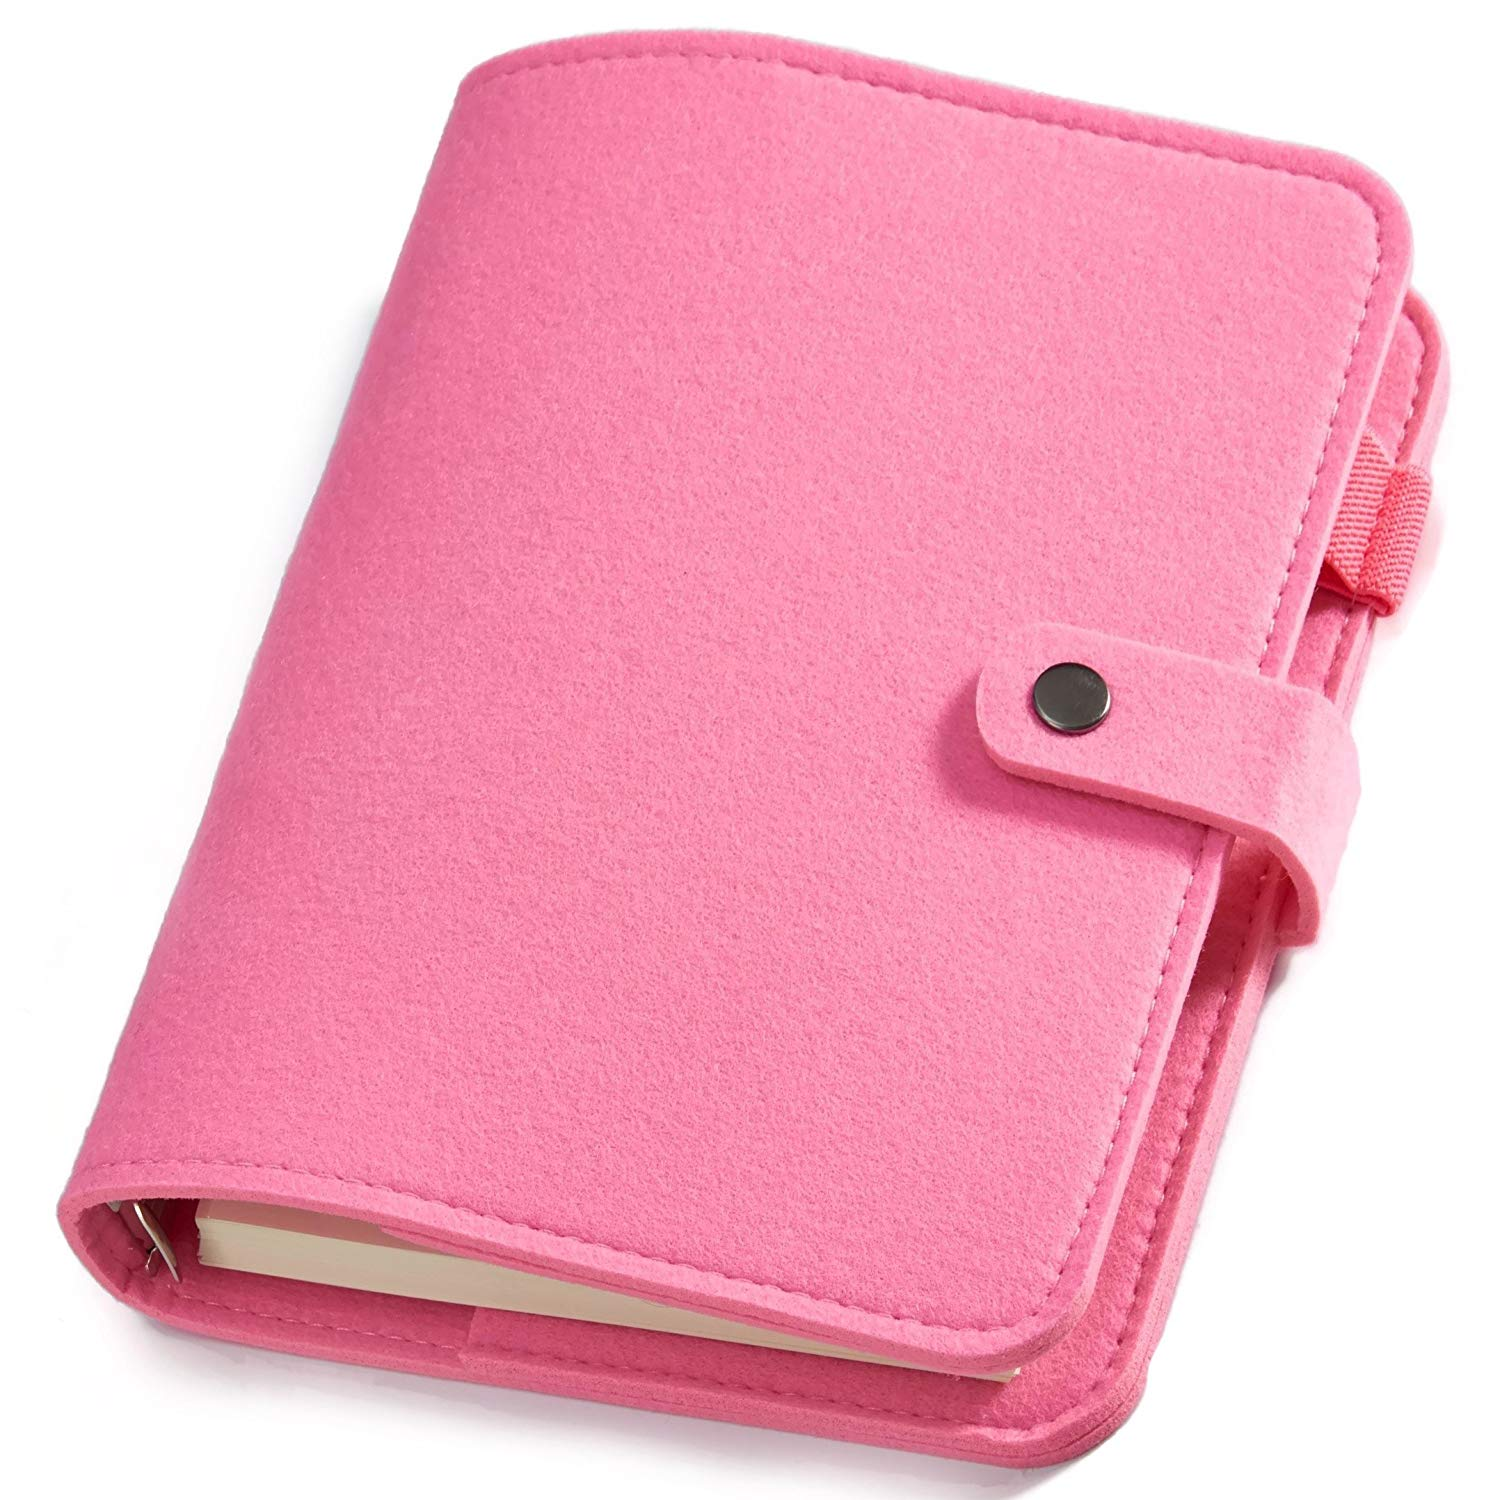 Poway Wool Felt Writing Journal, A5 Plain Pink, Spiral Bound 6 Ring Pocket Traveler Notebook Diary with Refillable Pages, 80 Sheets (160 Pages) 100gsm Premium Paper